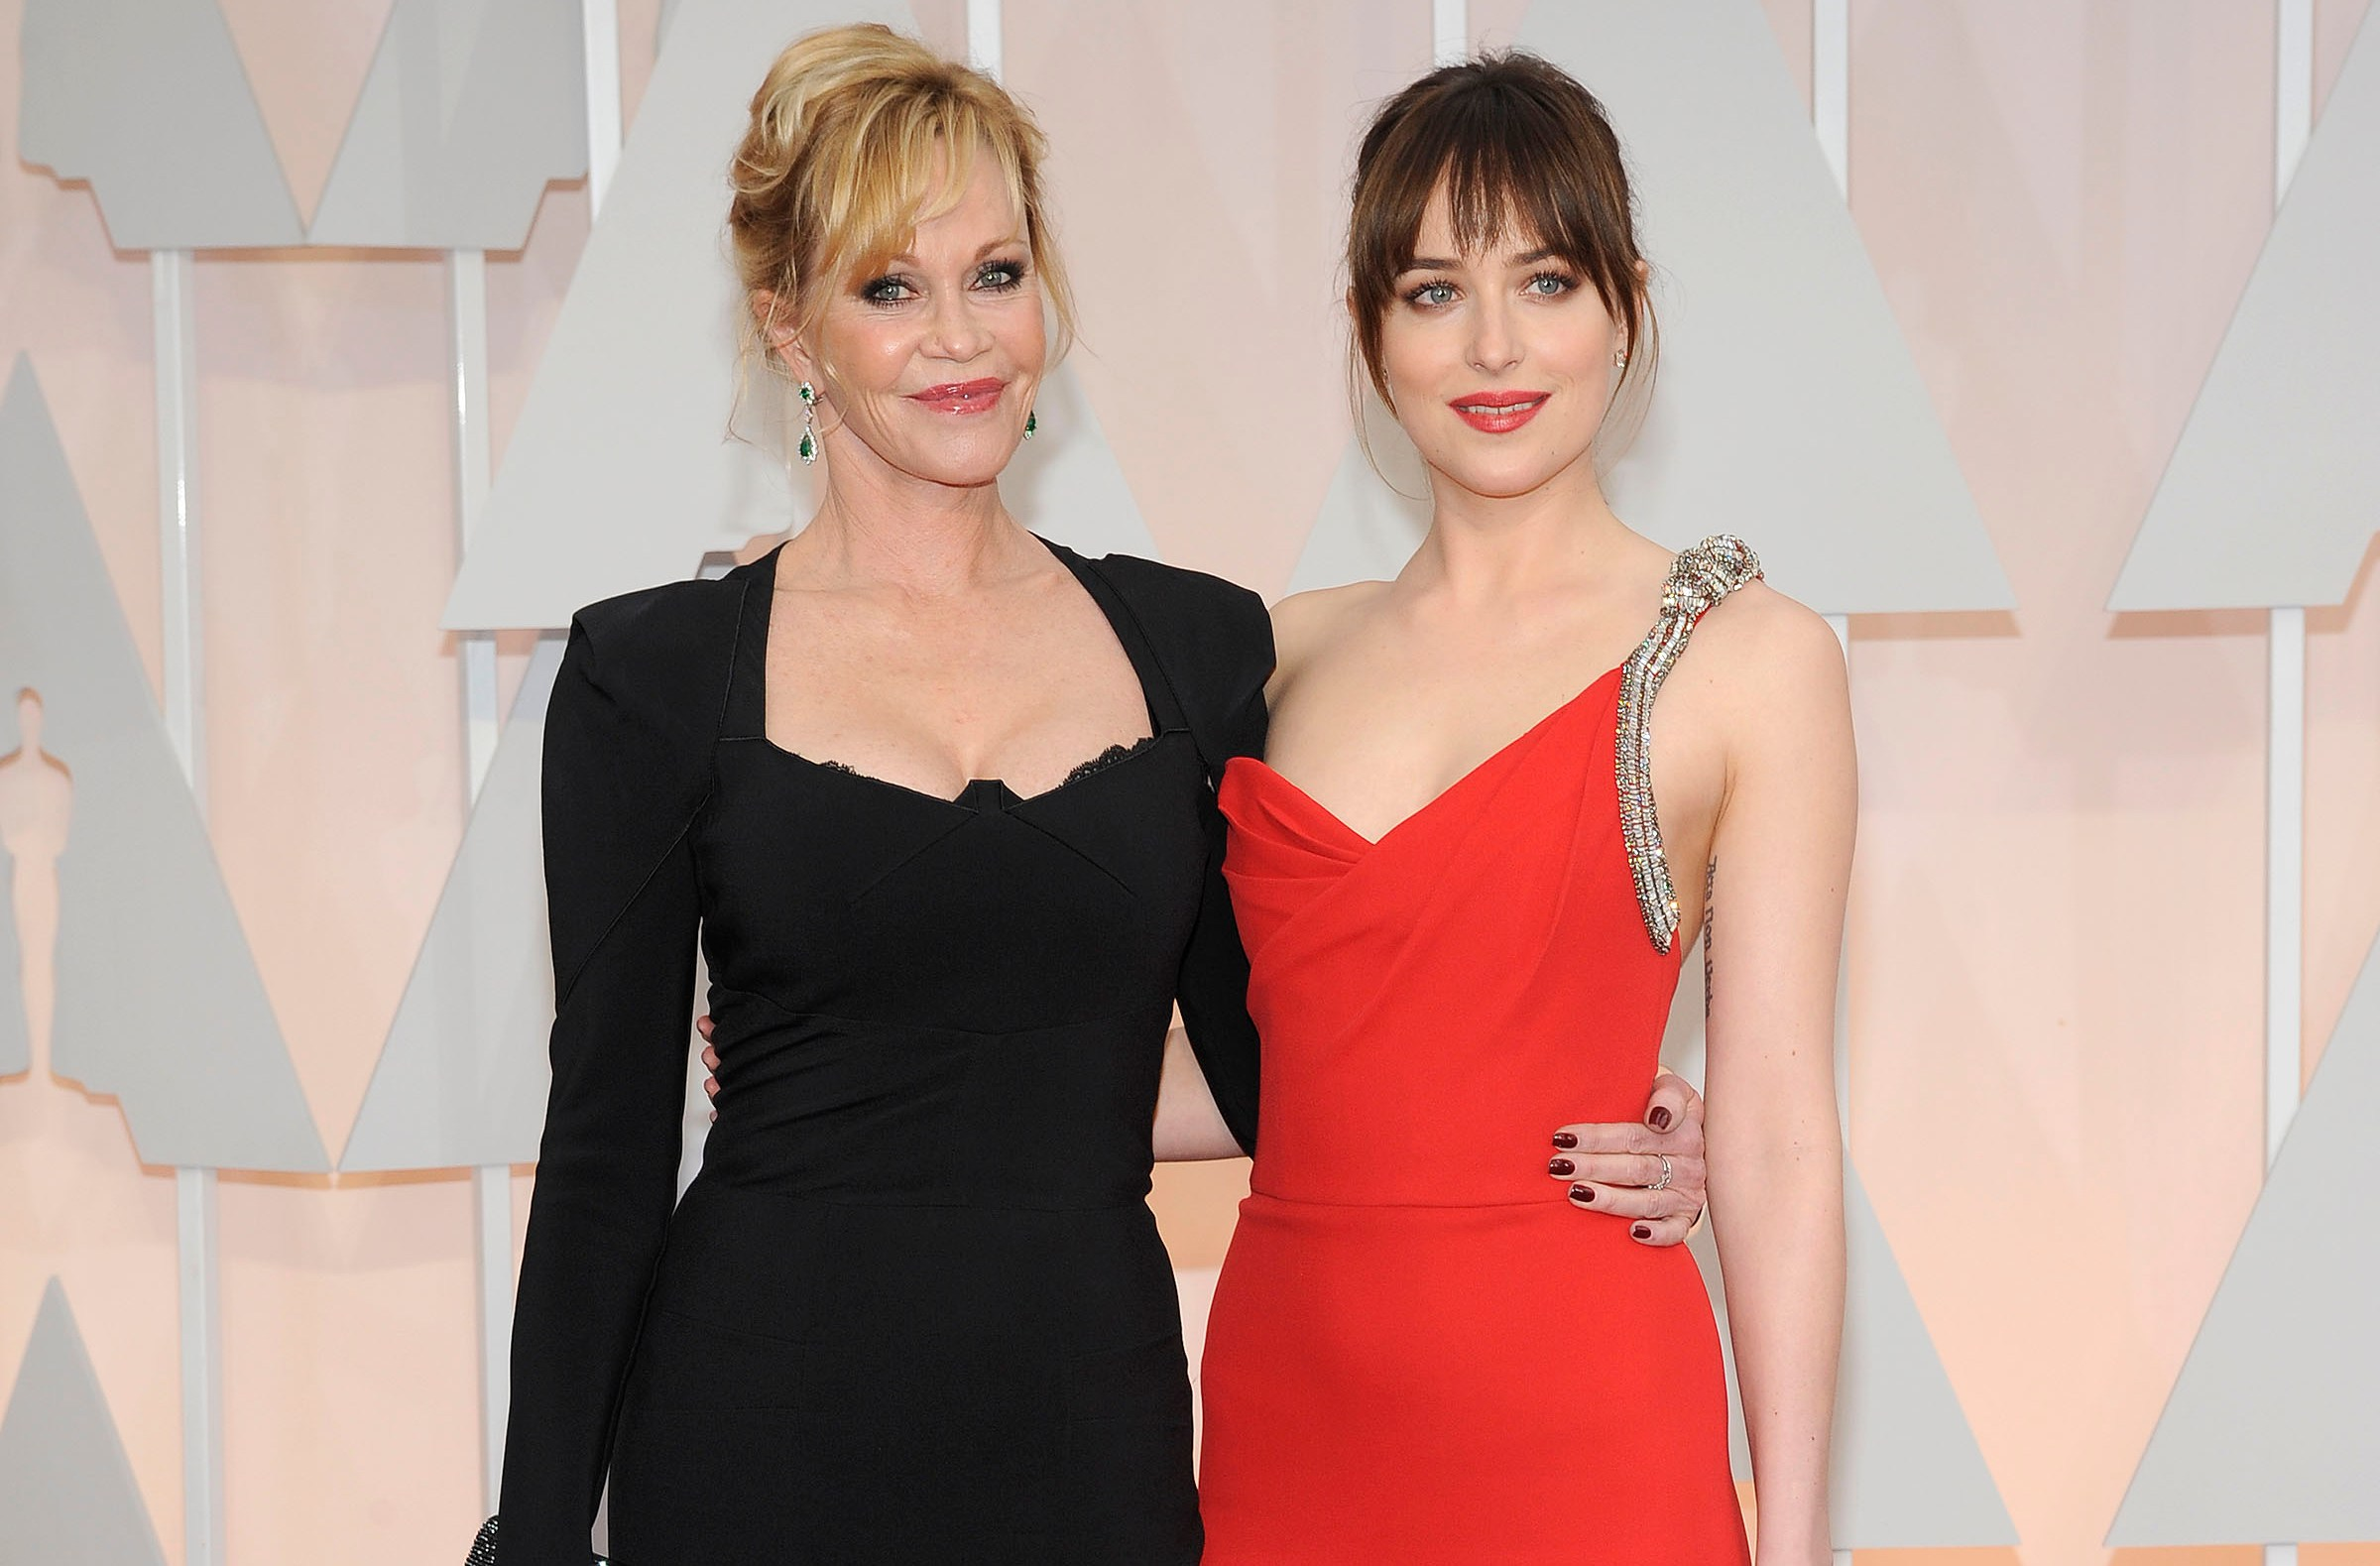 Dakota Johnson, Melanie Griffith Fight